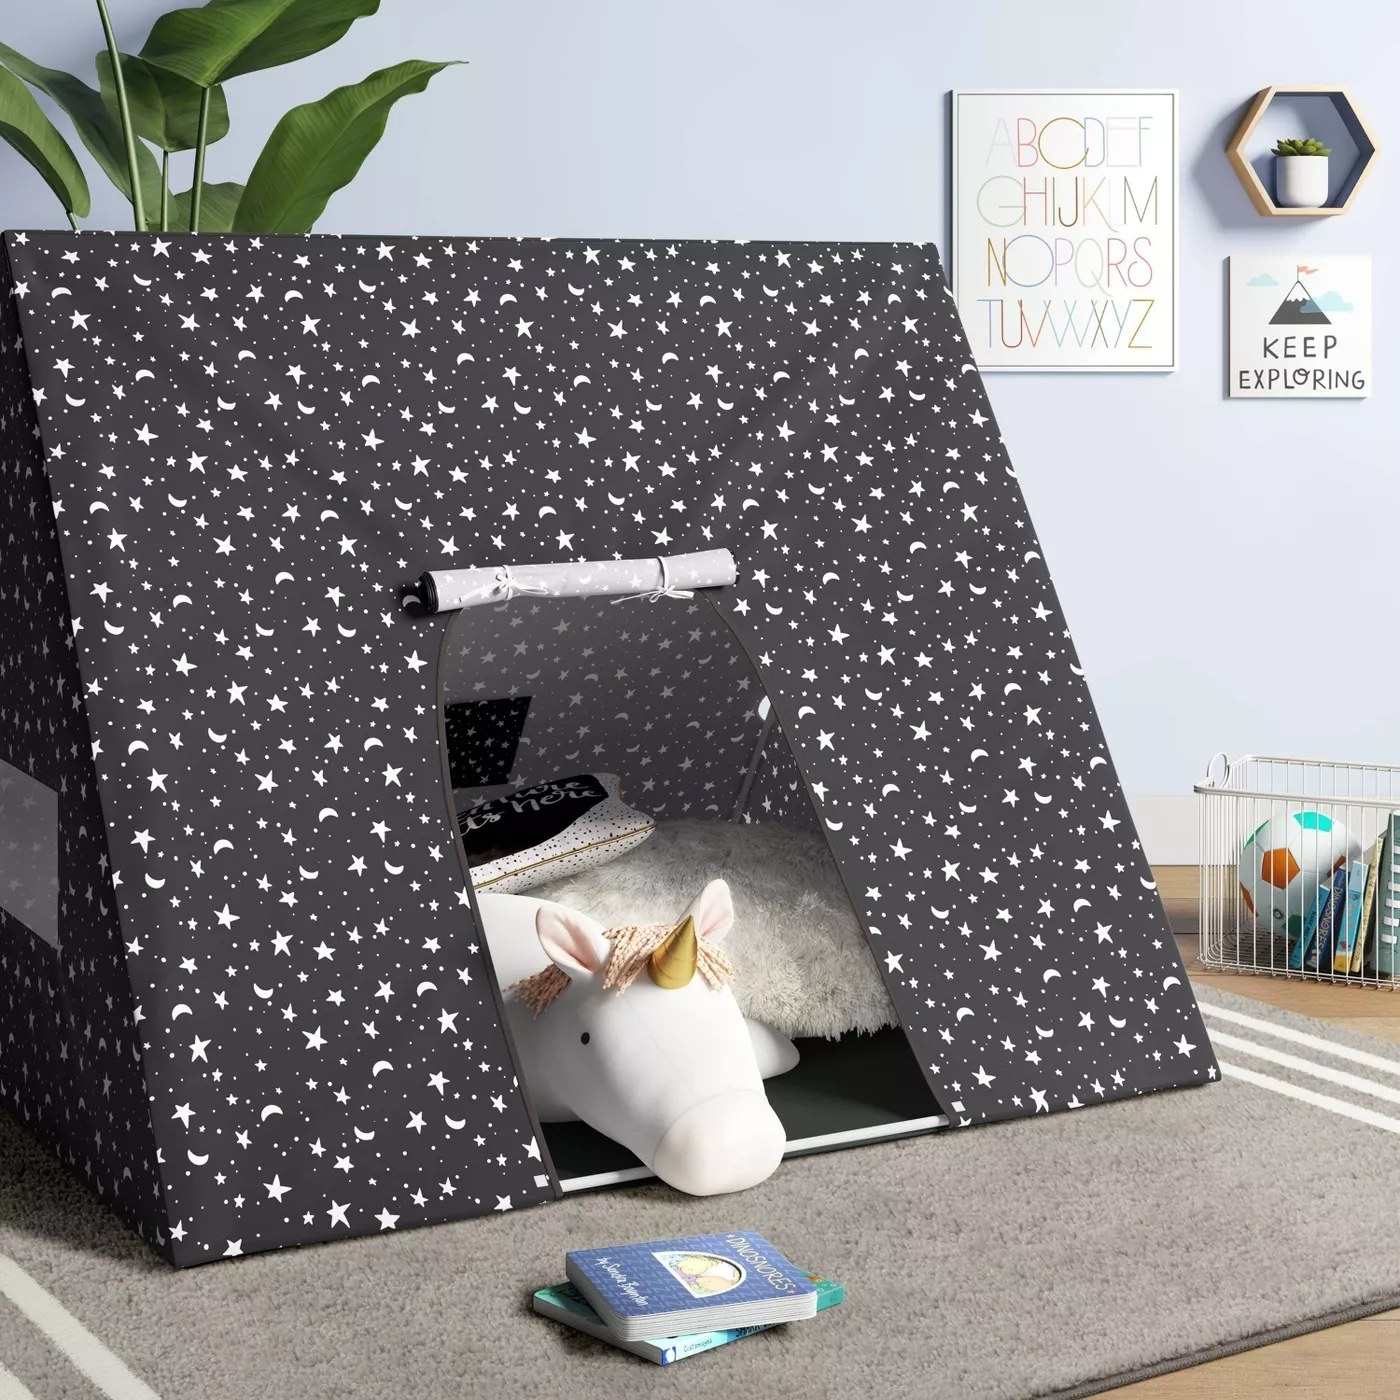 The tent with an entrance flap in a playroom